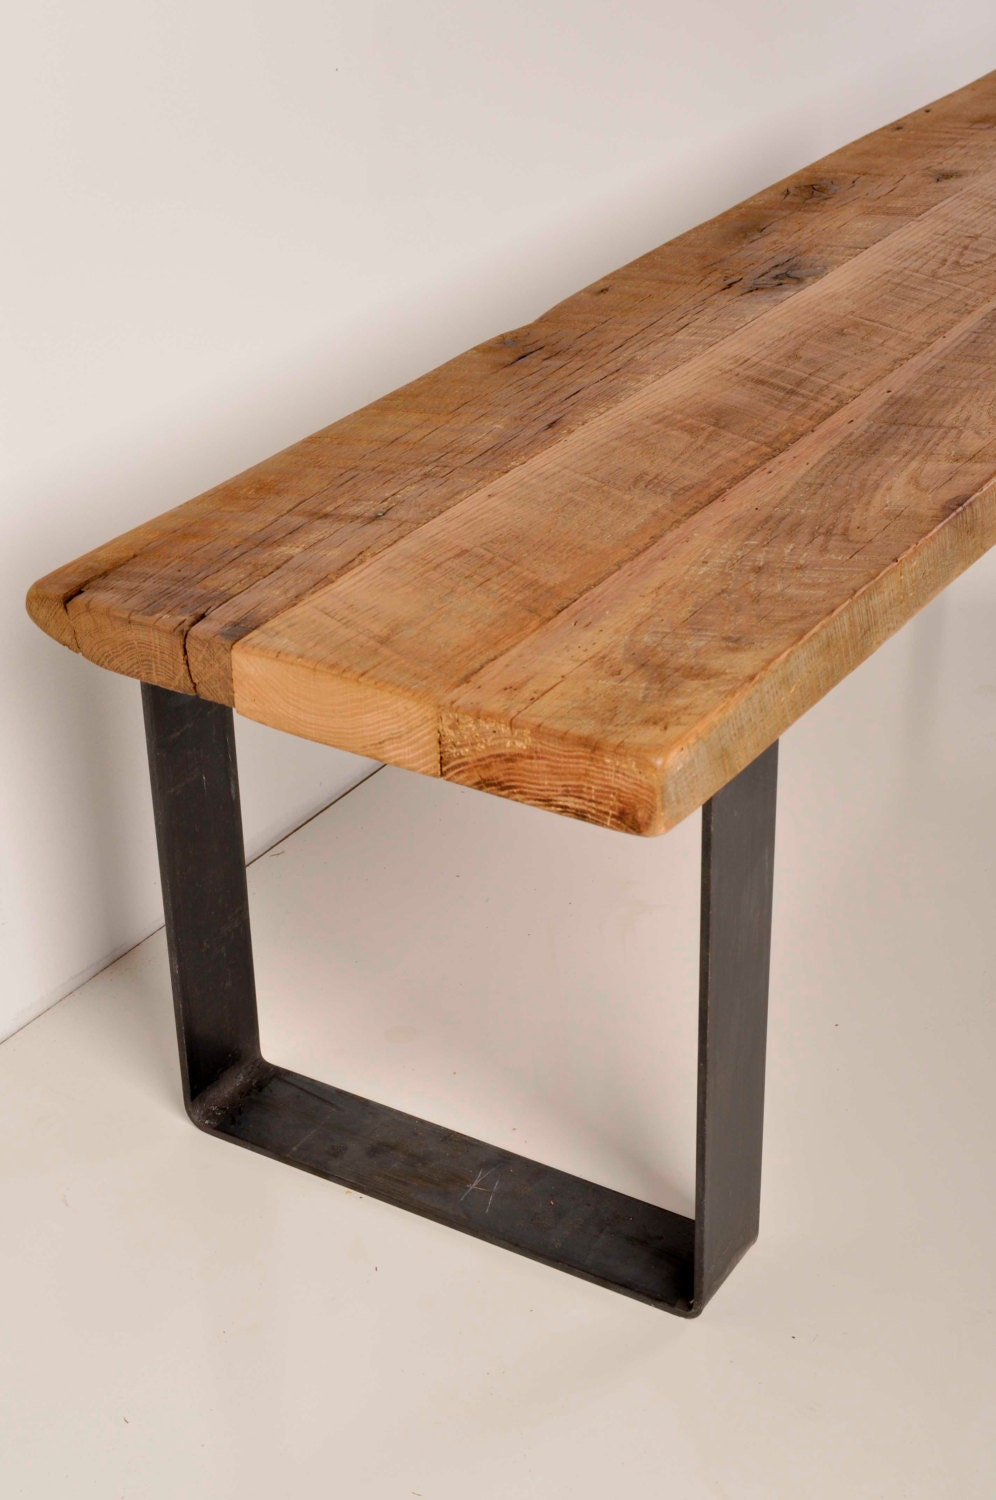 Reclaimed Barn Wood And Industrial Metal Bench By Cr71 On Etsy